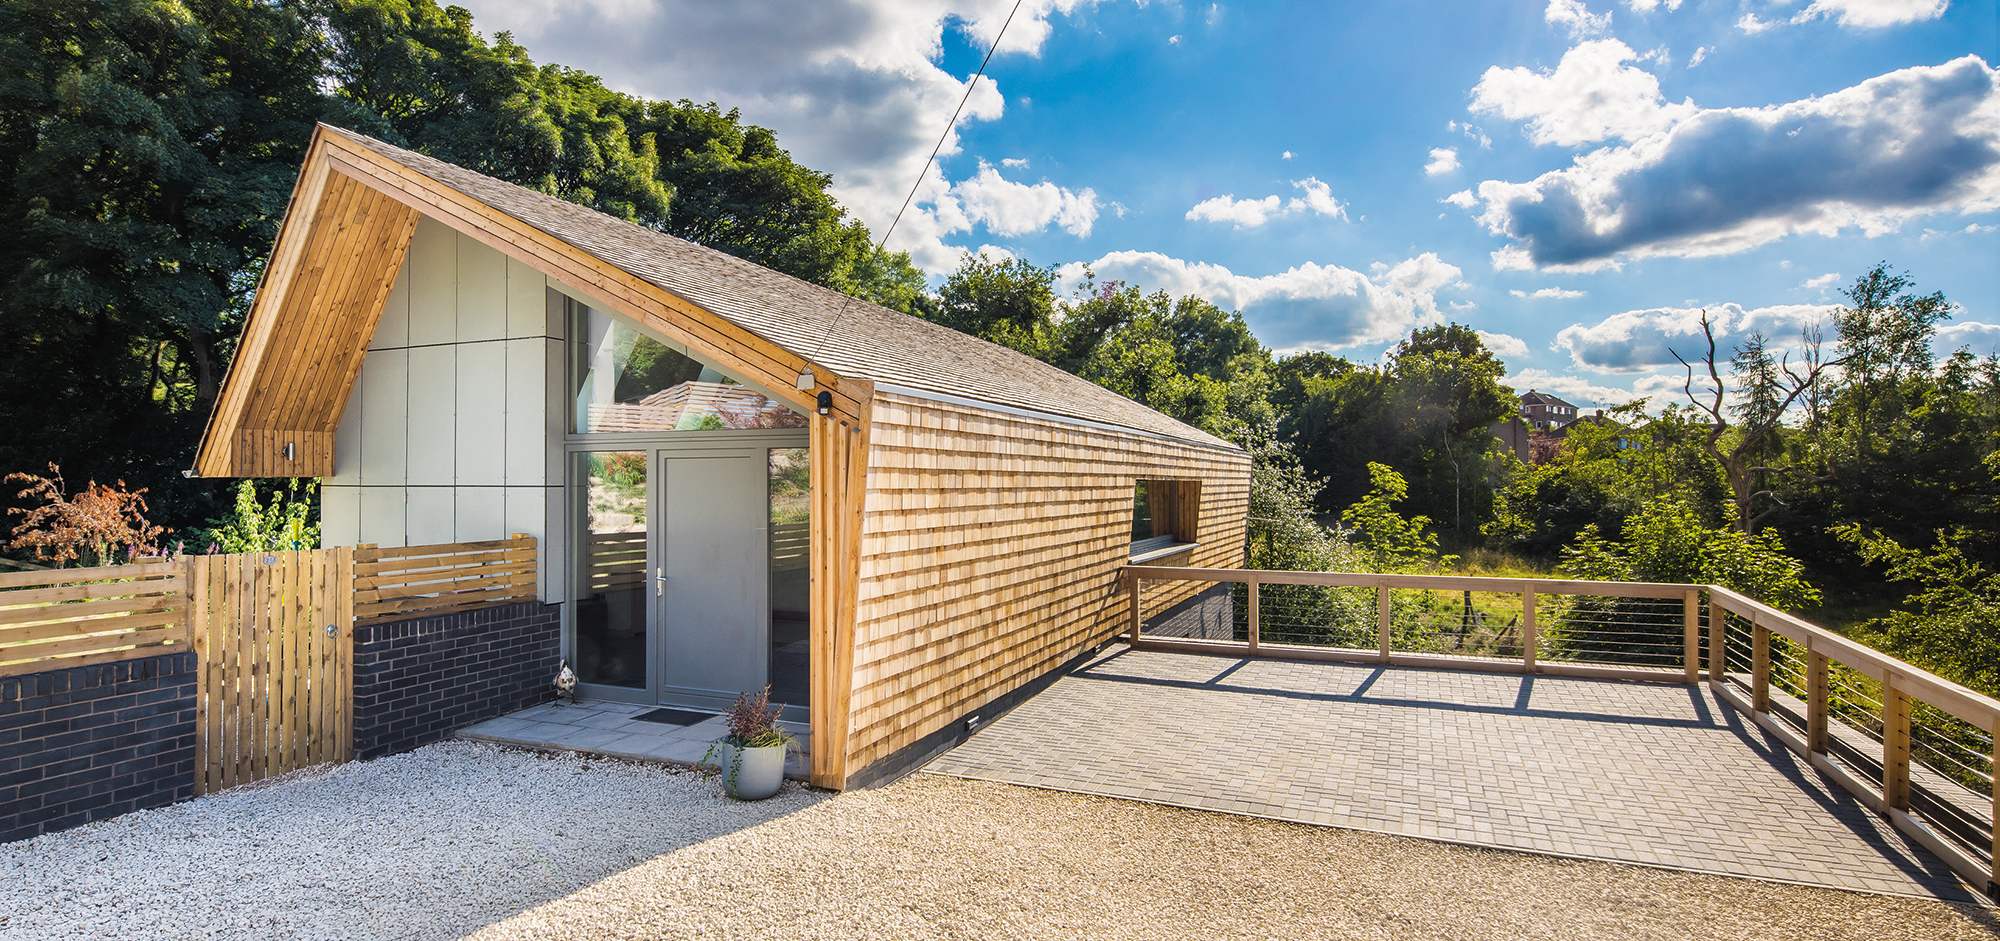 build a timber frame house on a budget